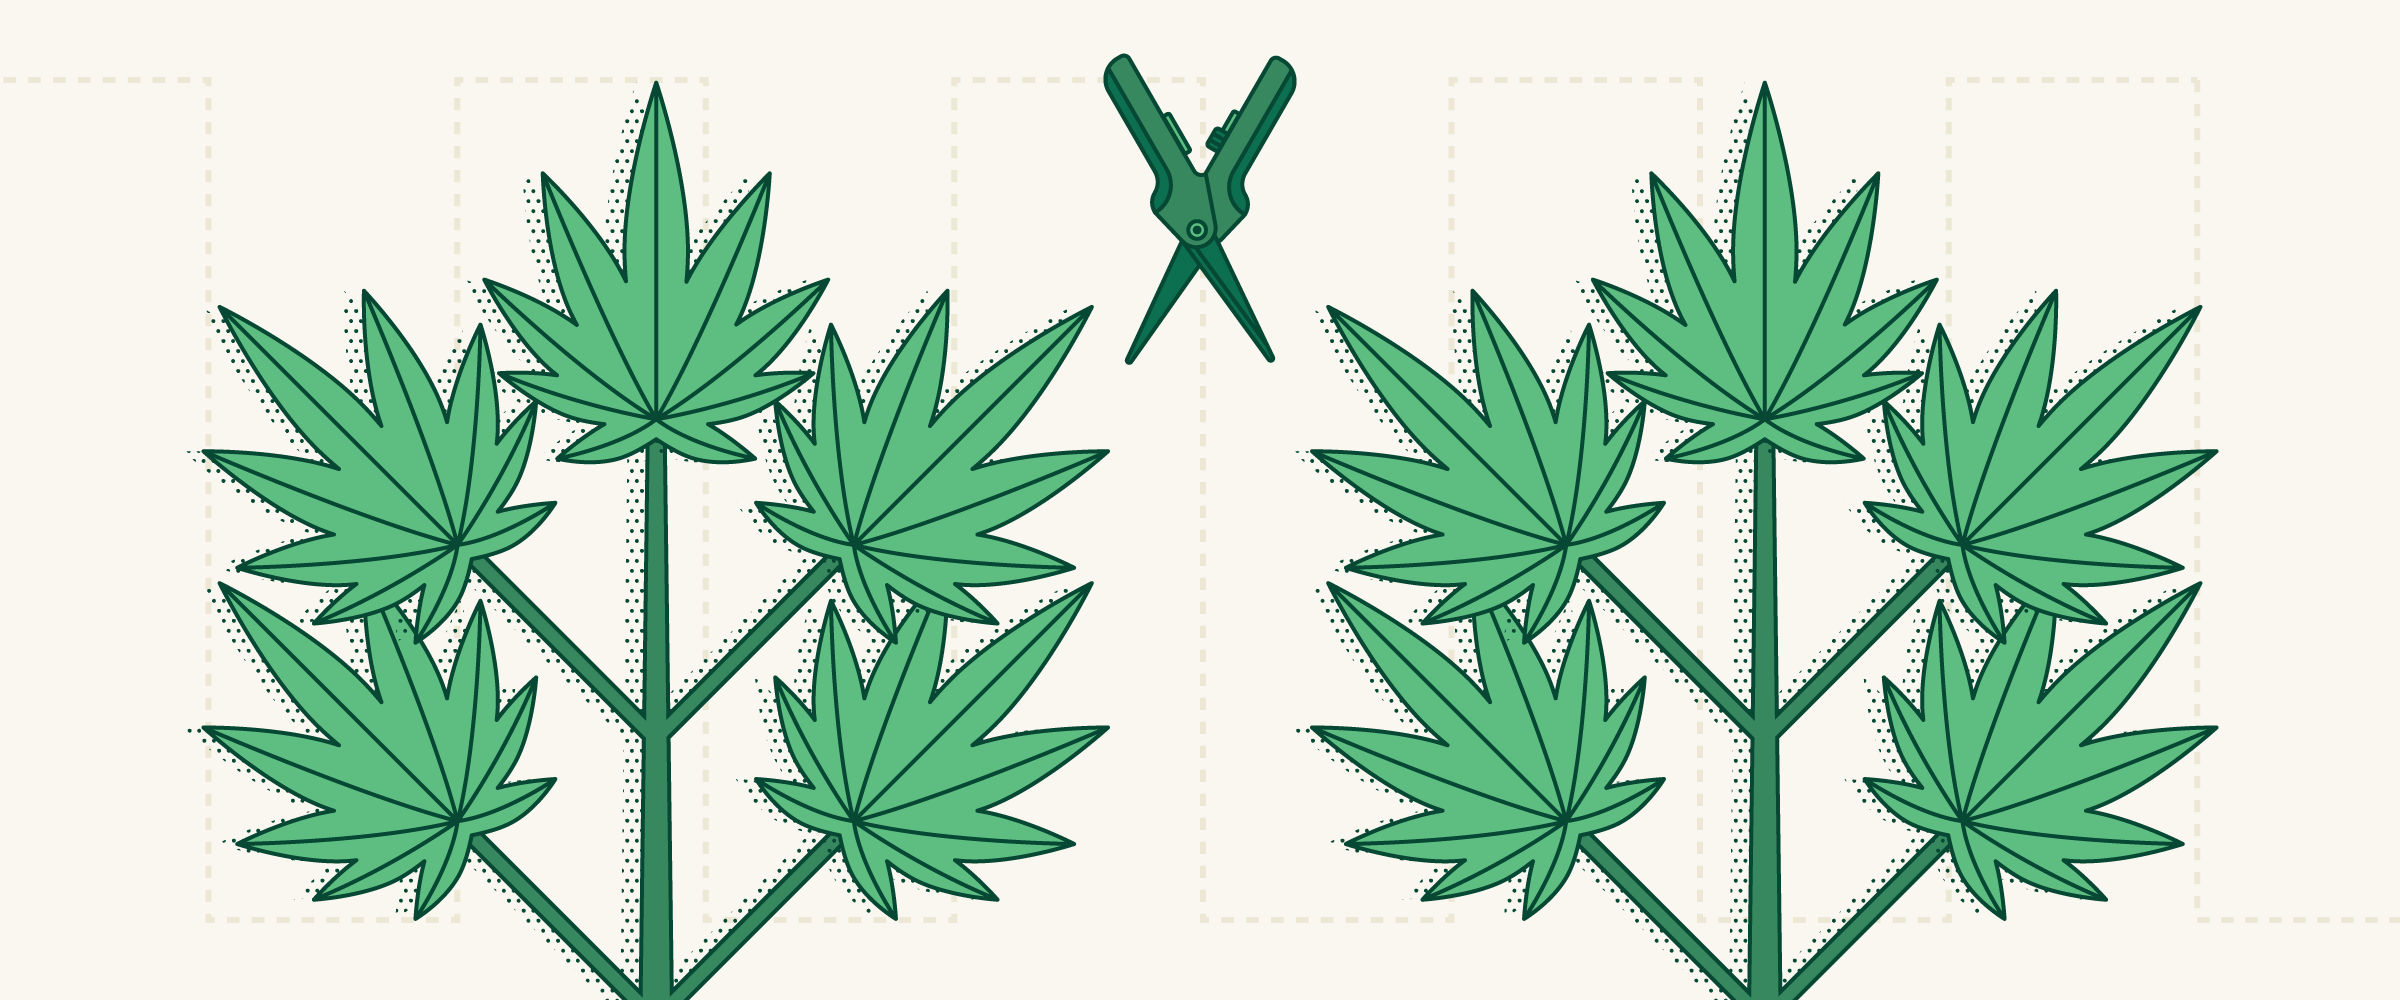 Cloning Marijuana: How To Clone a Weed Plant or Grow From Seeds